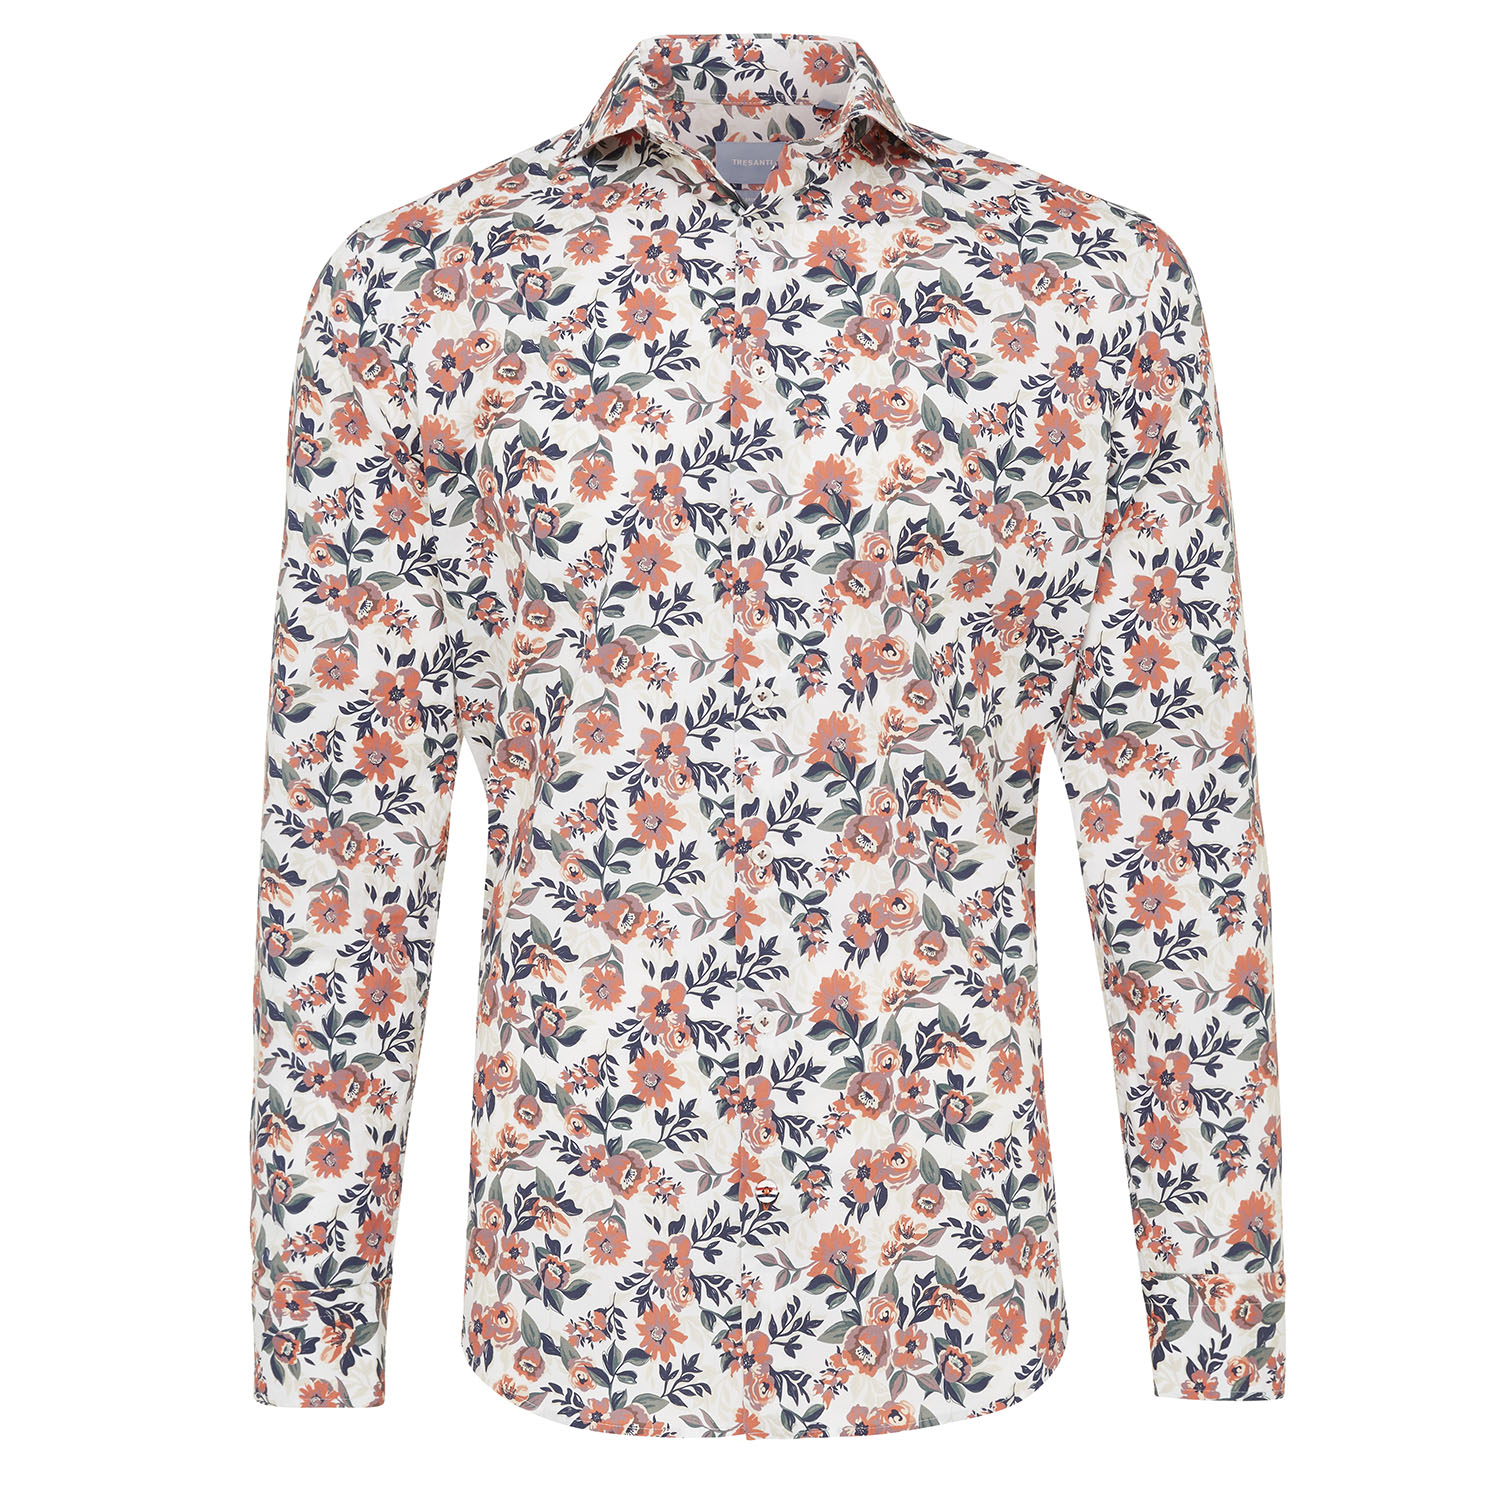 Mischa | Shirt white allover flower print